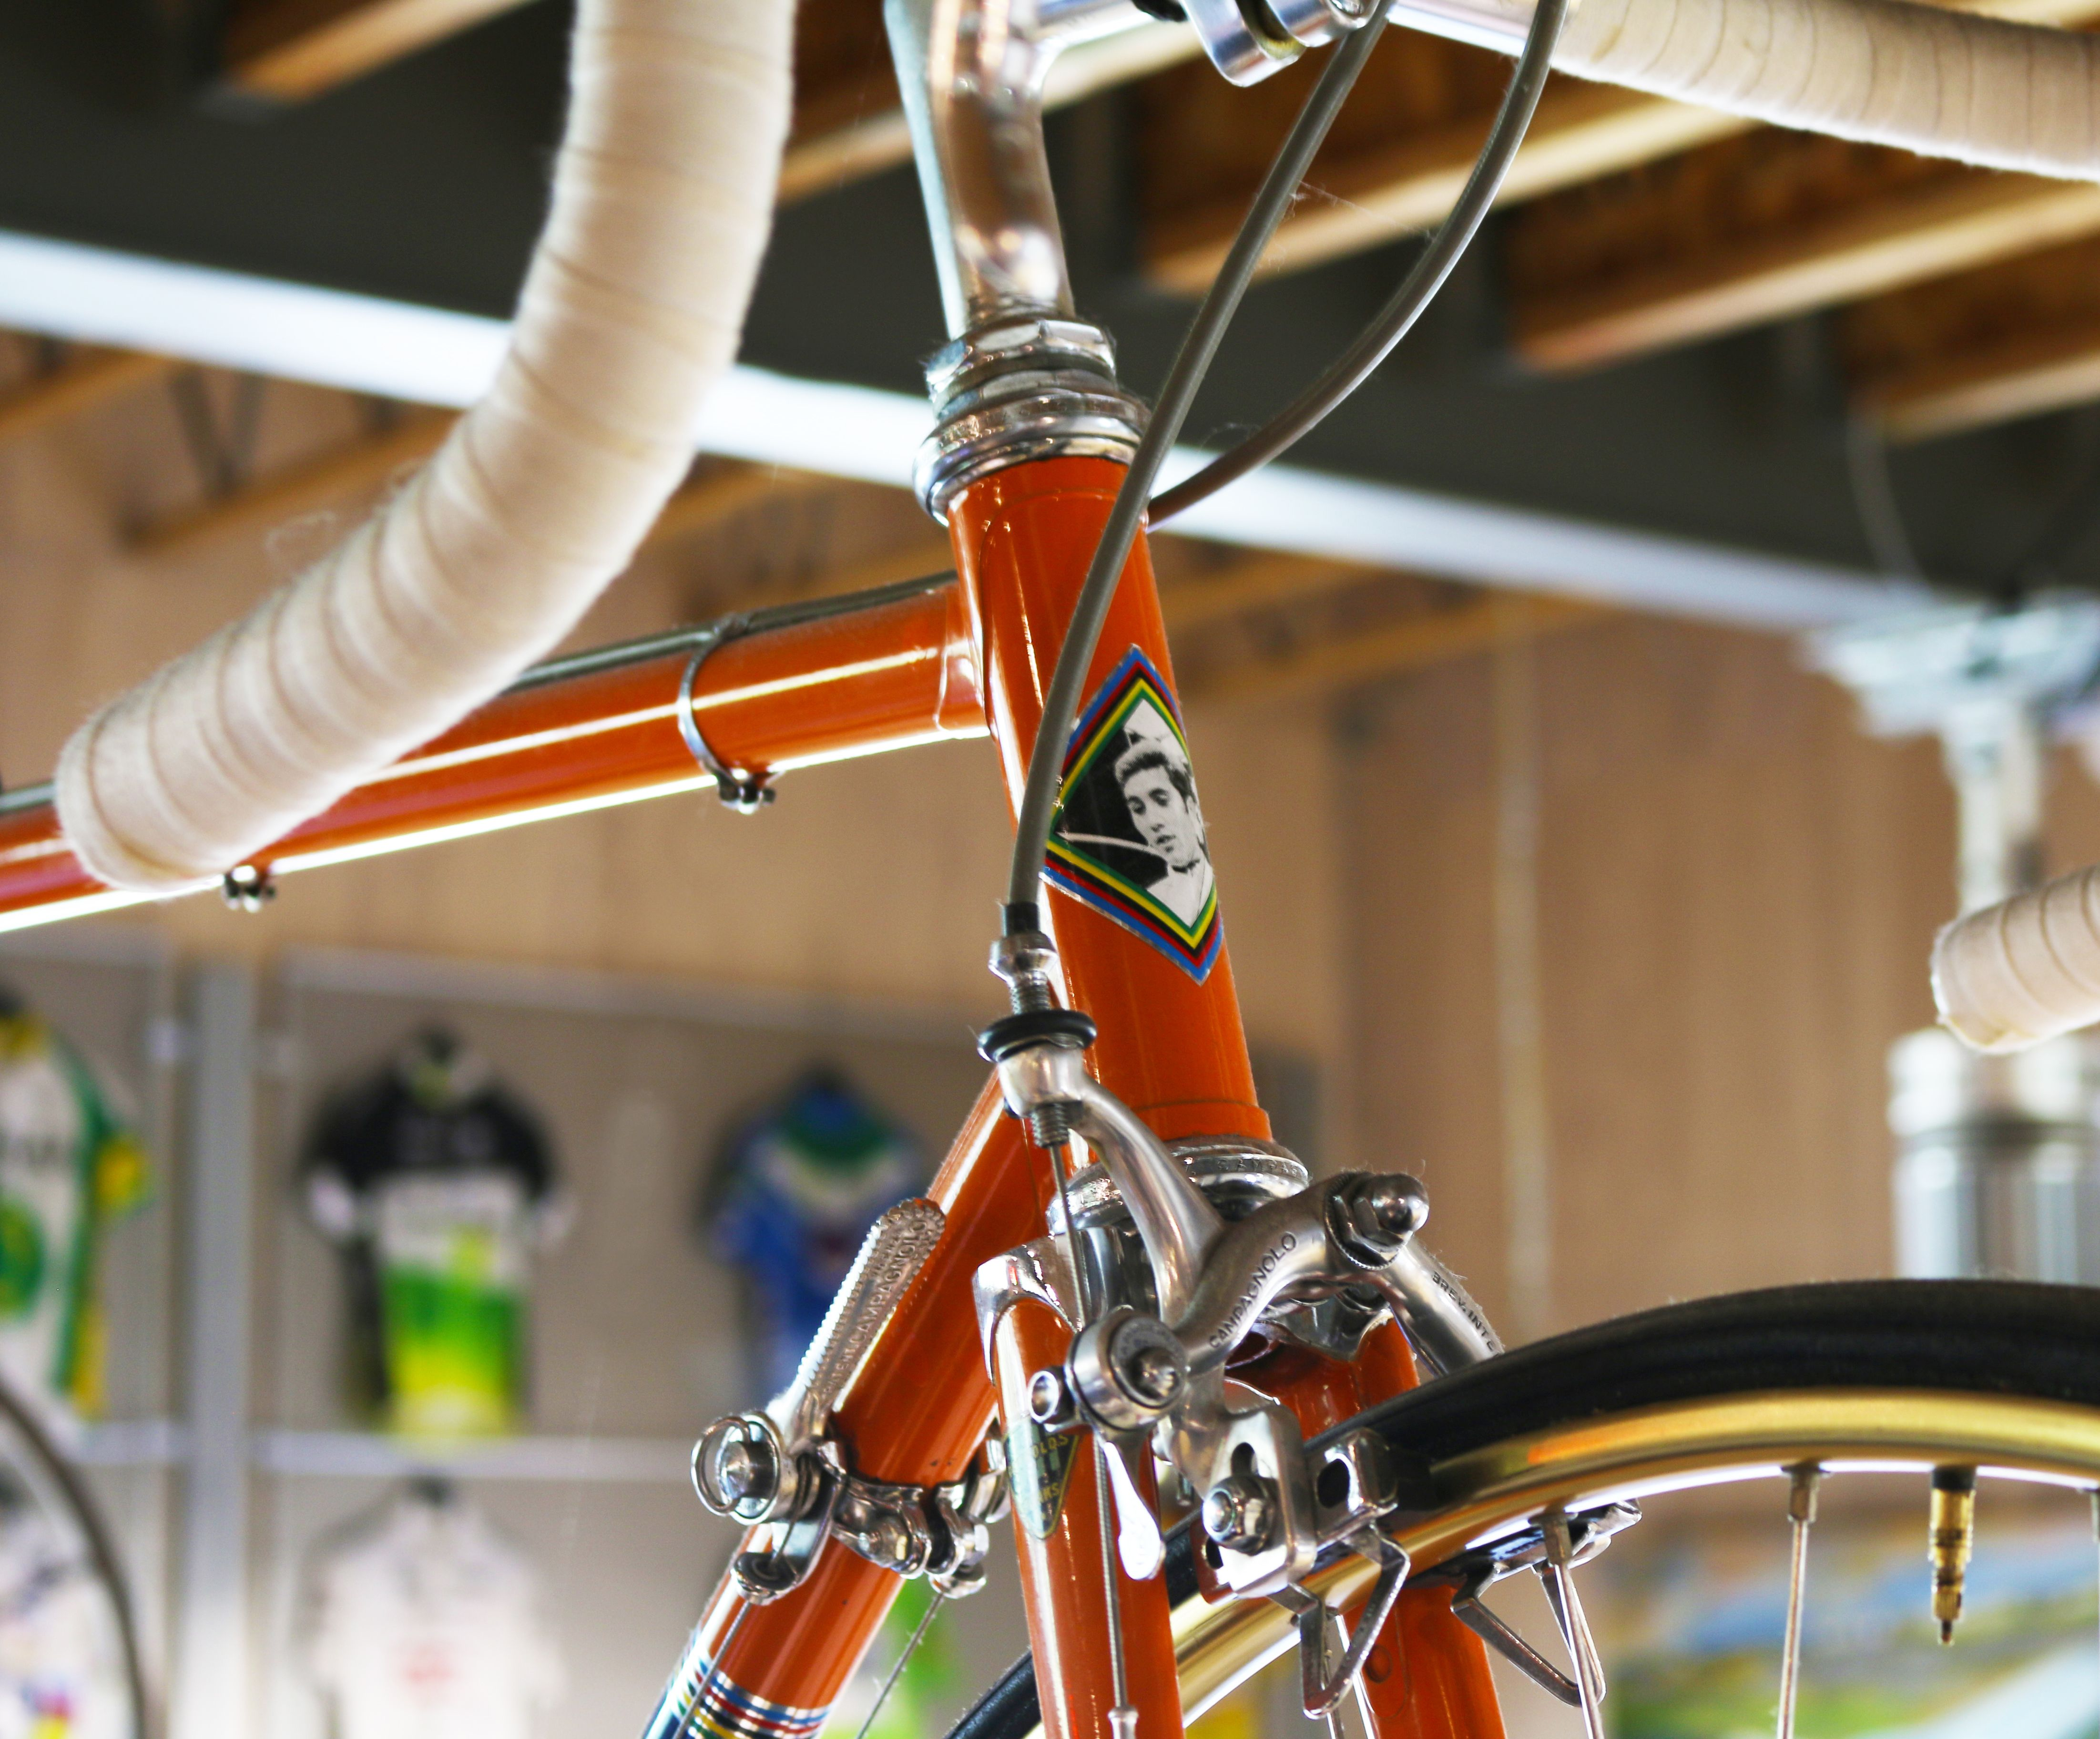 1970's Eddy Merckx Molteni team bike. The bike was actually used by a domestique on the Molteni team. Custom frame from Kessels.